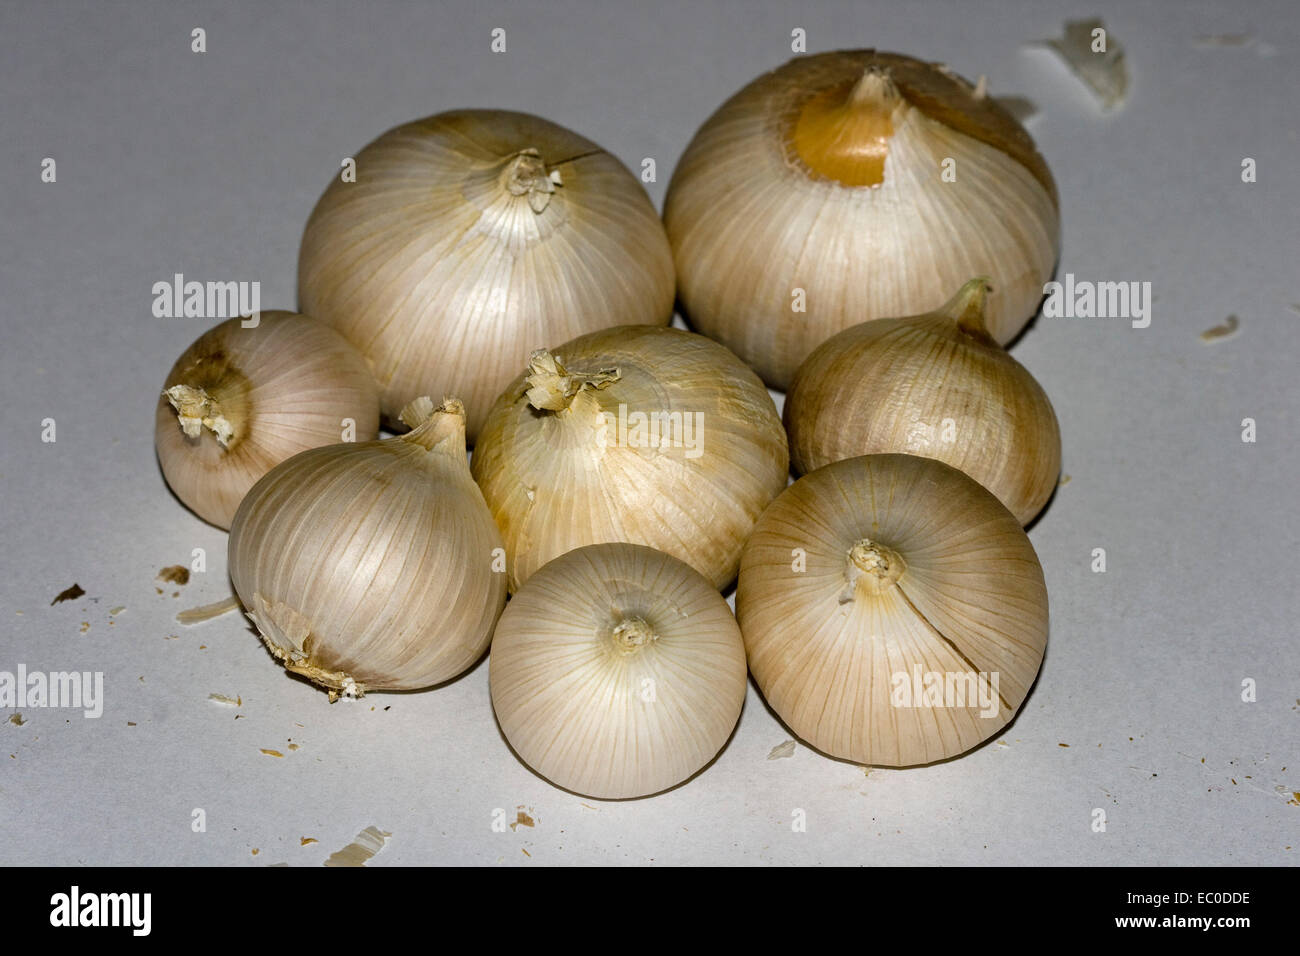 Cluster of freshly harvested bulbs of giant Russian / elephant garlic, on pale background - Stock Image